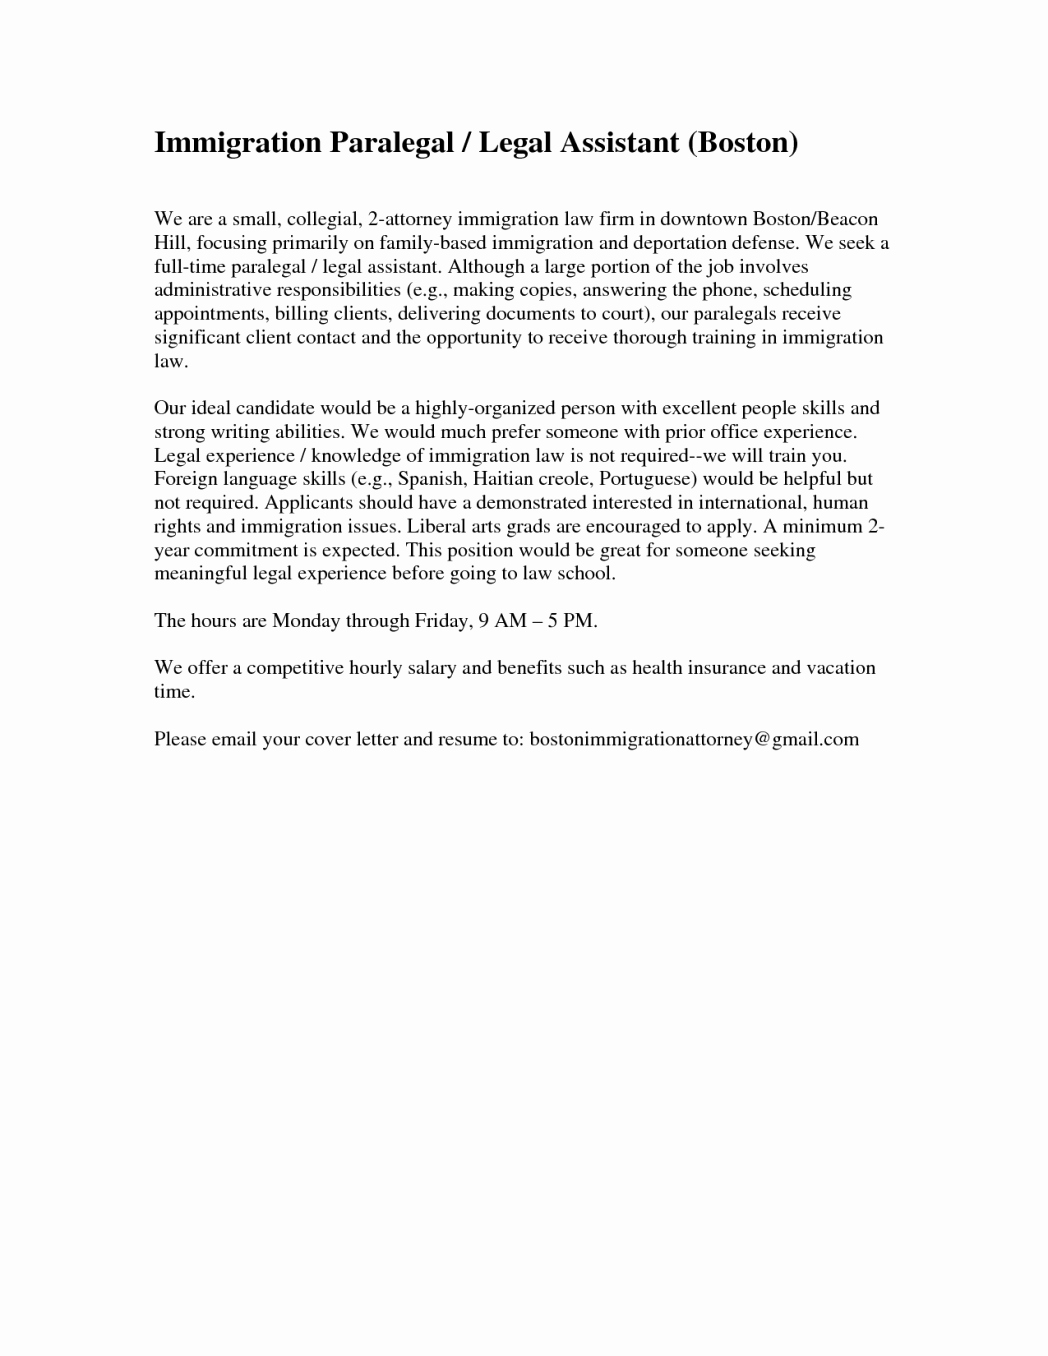 Cover Letter Examples for Legal Counsel